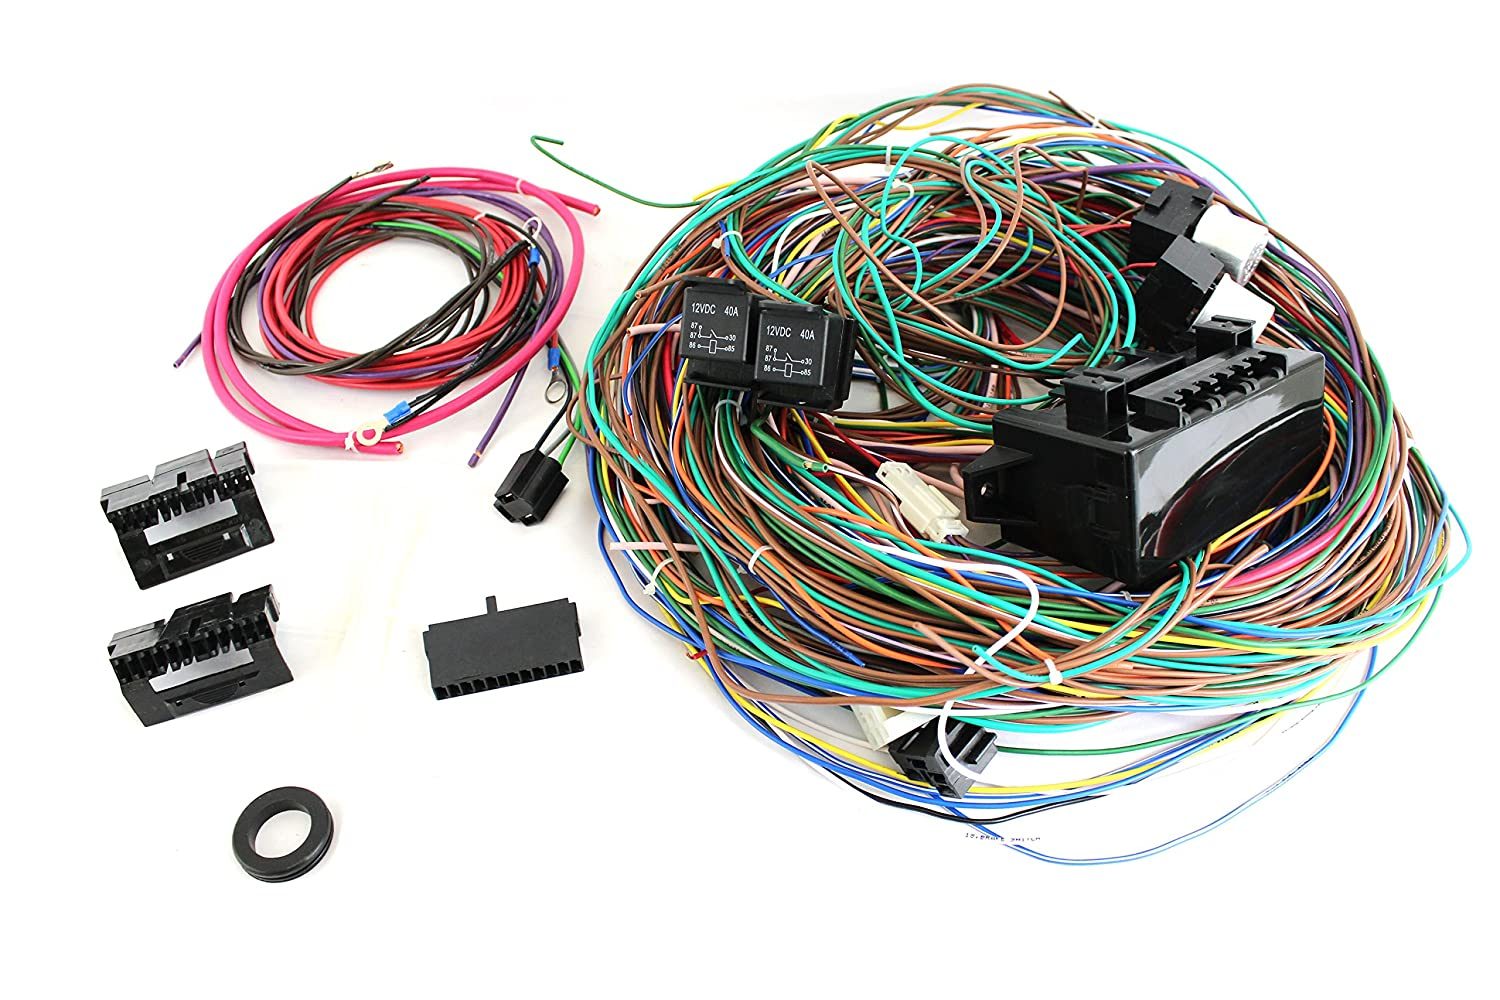 91YoamXFx2L._SL1500_ amazon com 12v 24 circuit 15 fuse street hot rat rod wiring hot rod wiring harness universal at alyssarenee.co